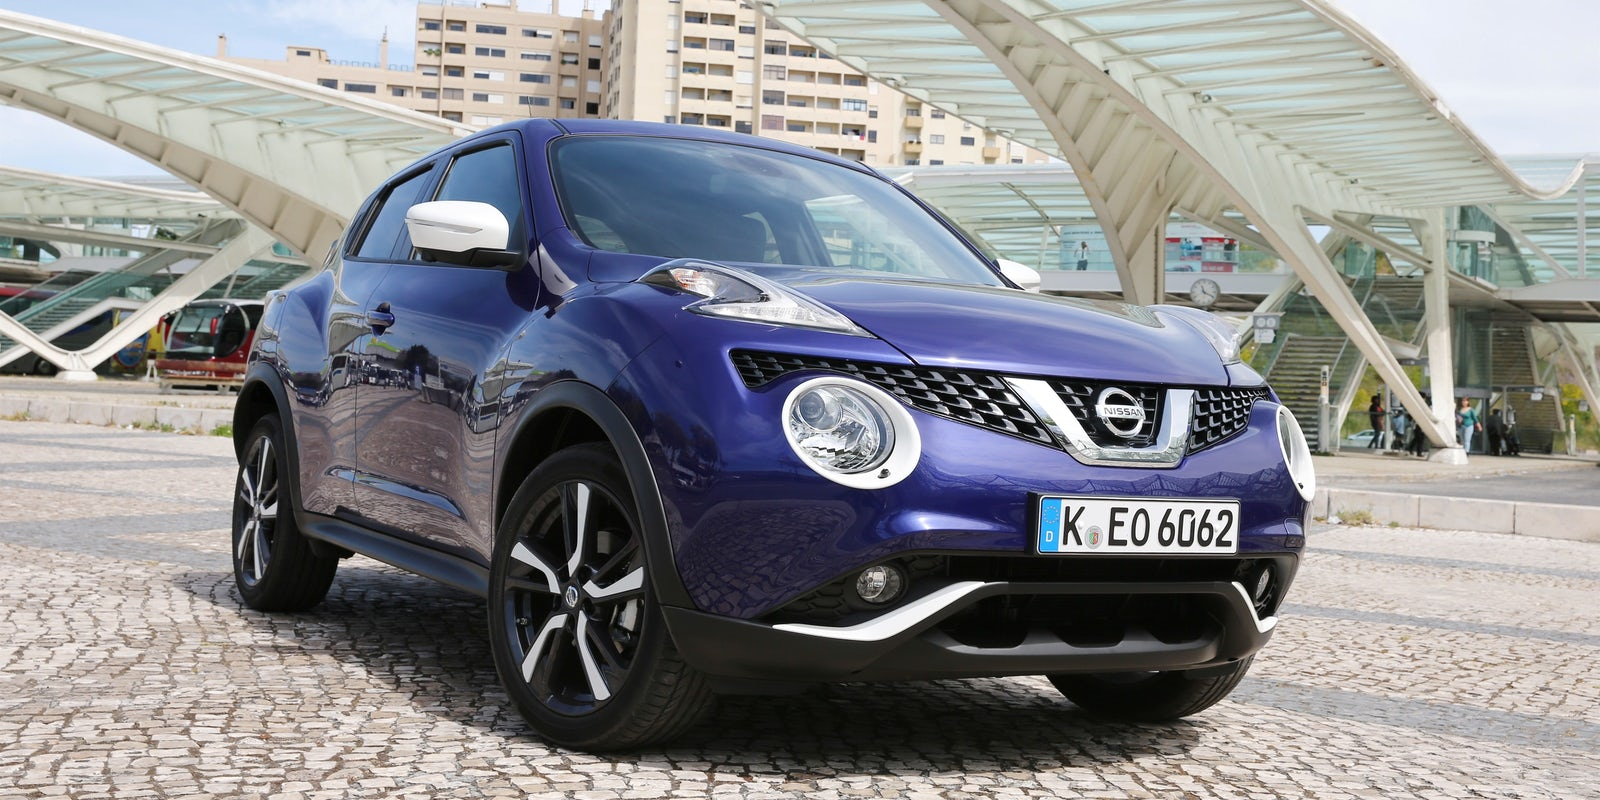 nissan juke test technische daten preis carwow. Black Bedroom Furniture Sets. Home Design Ideas